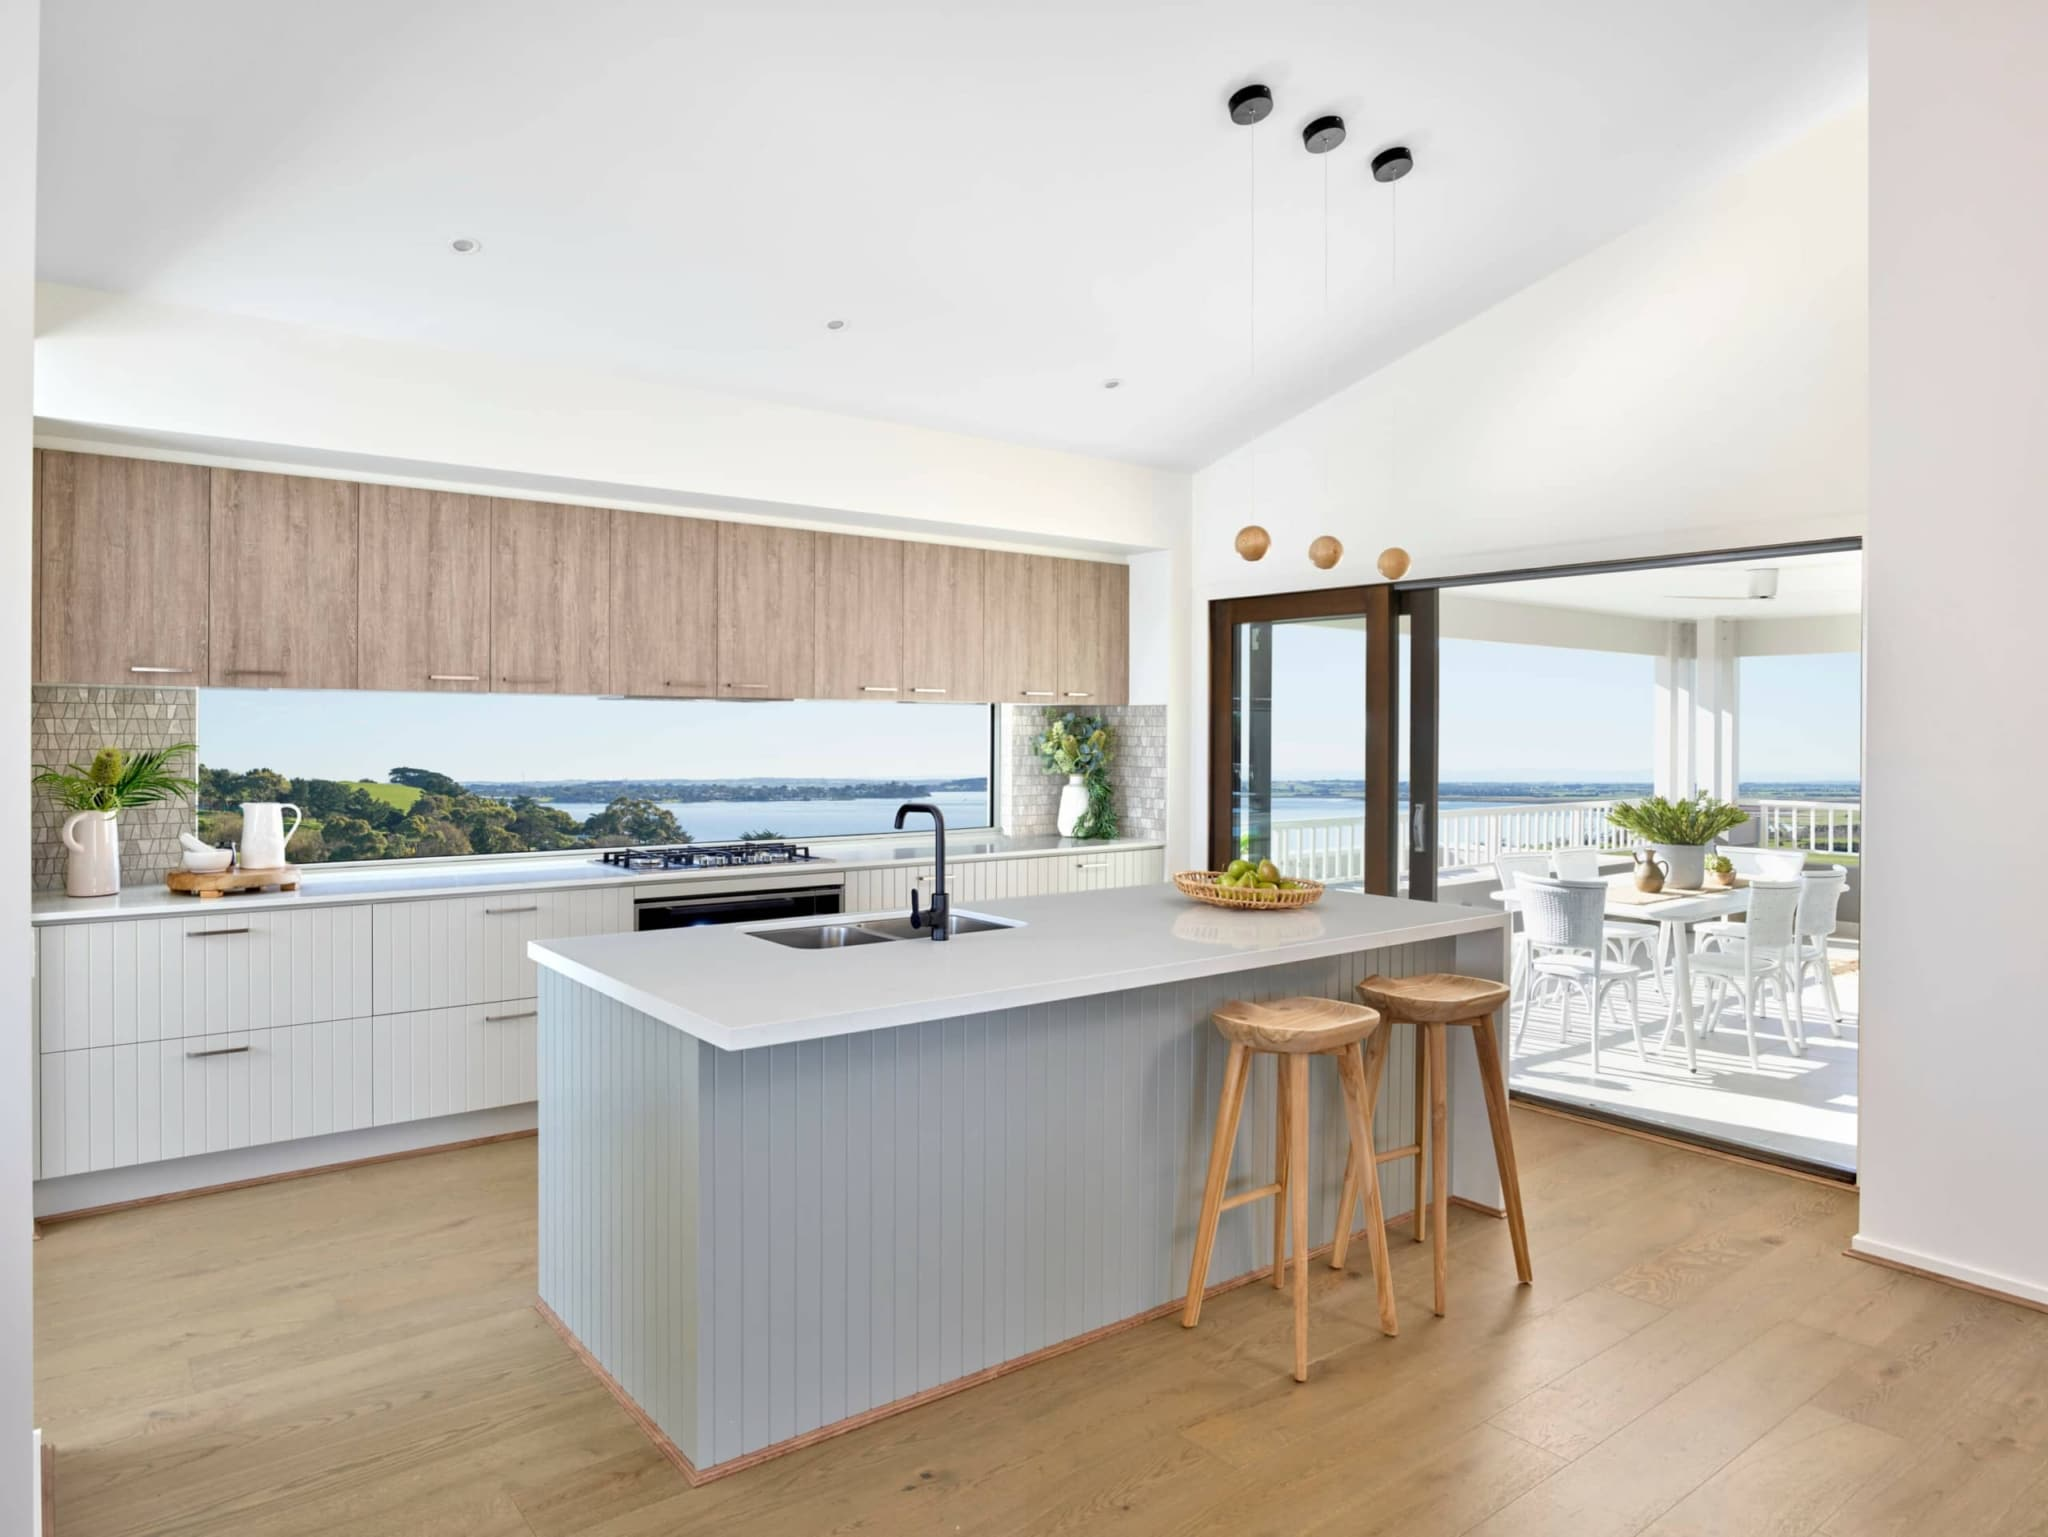 metricon coastal kitchen with vj panel cabinets and glass window splashback